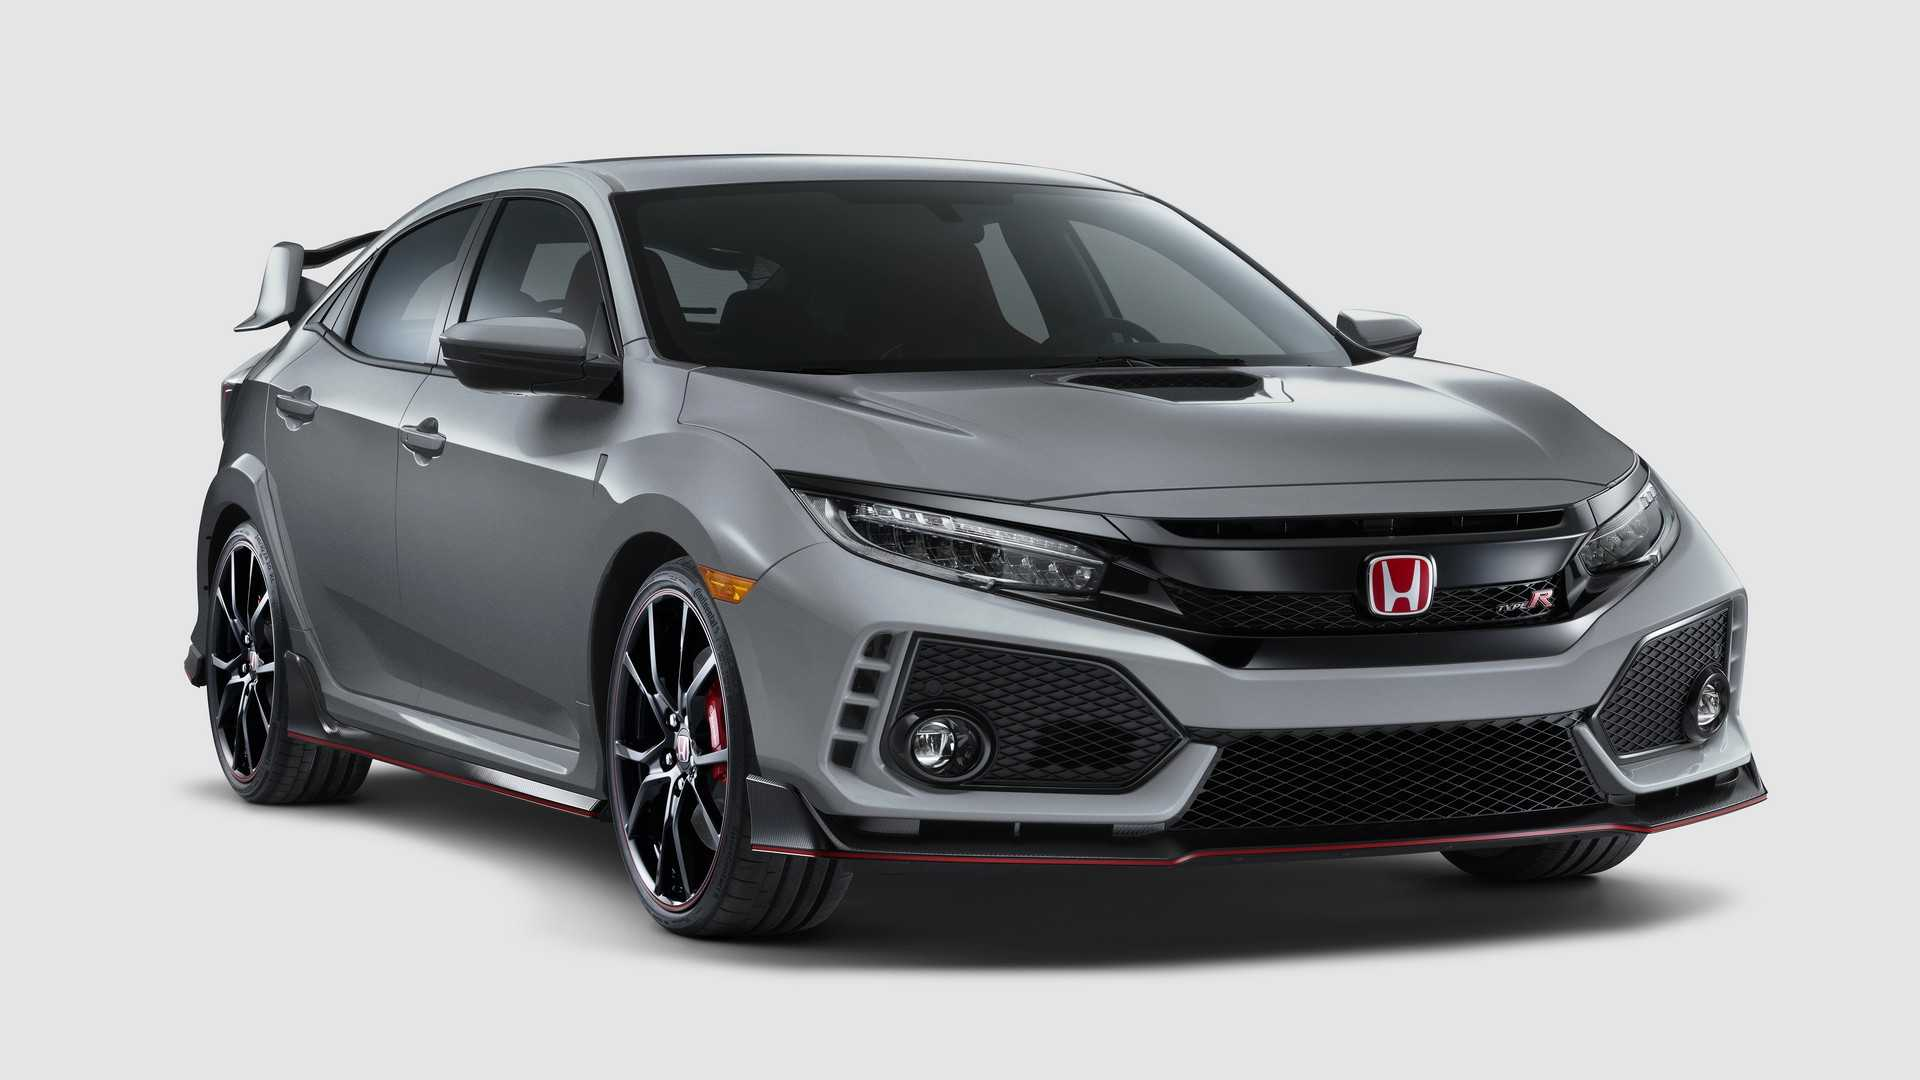 2019 Honda Civic Type R Arrives With New Color, More Standard Kit